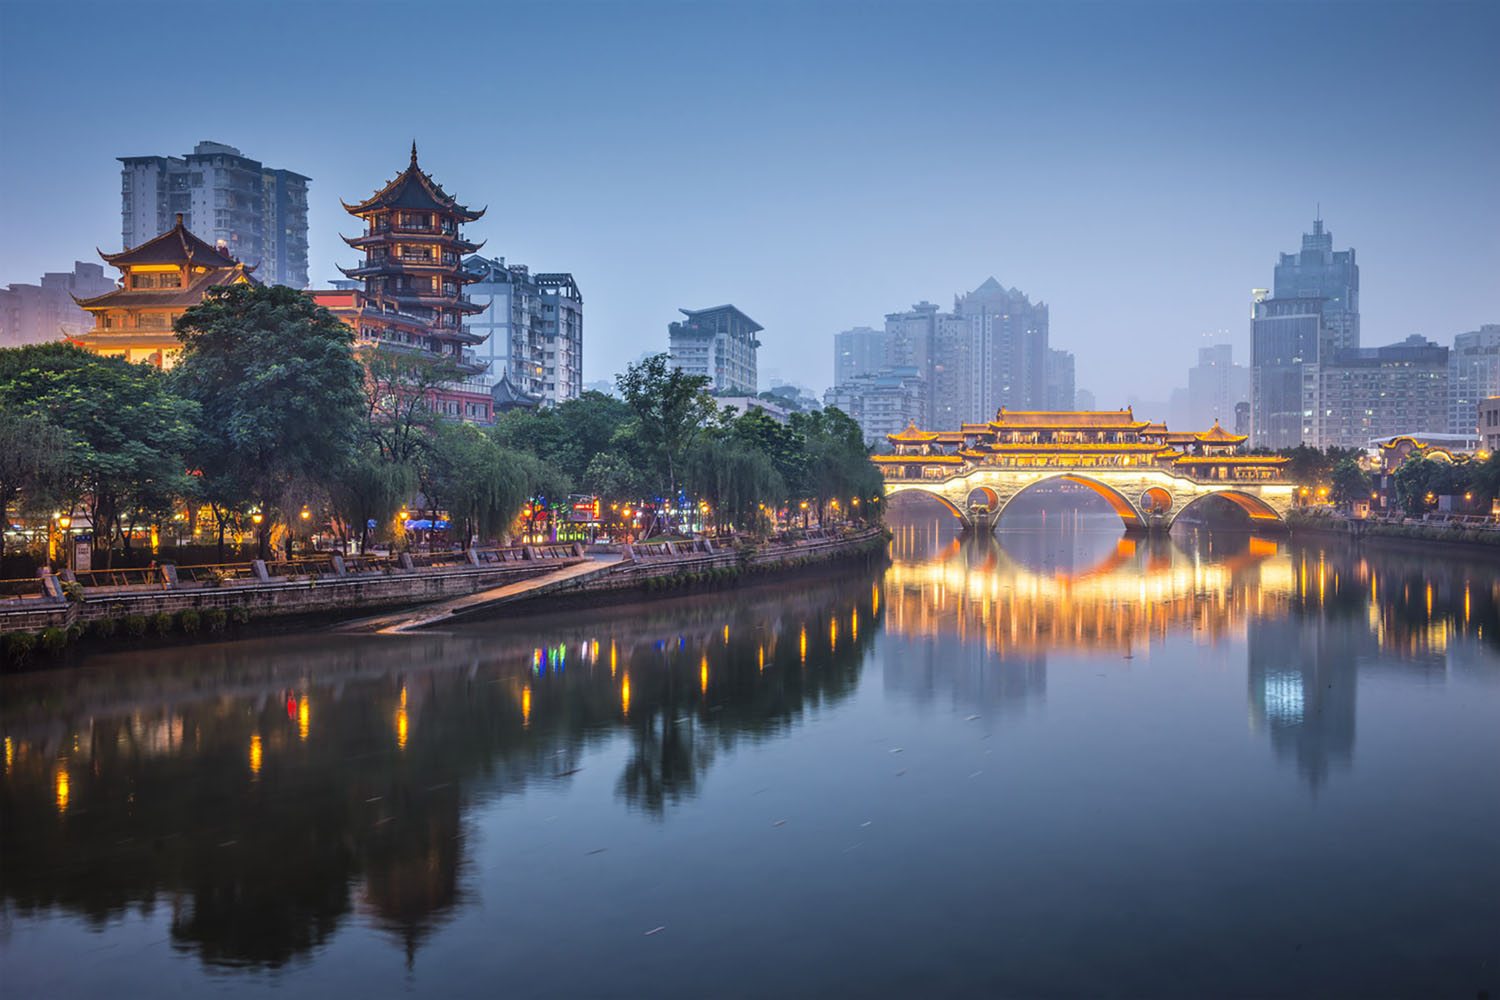 The Anshun Bridge in Chengdu, Sichuan, China